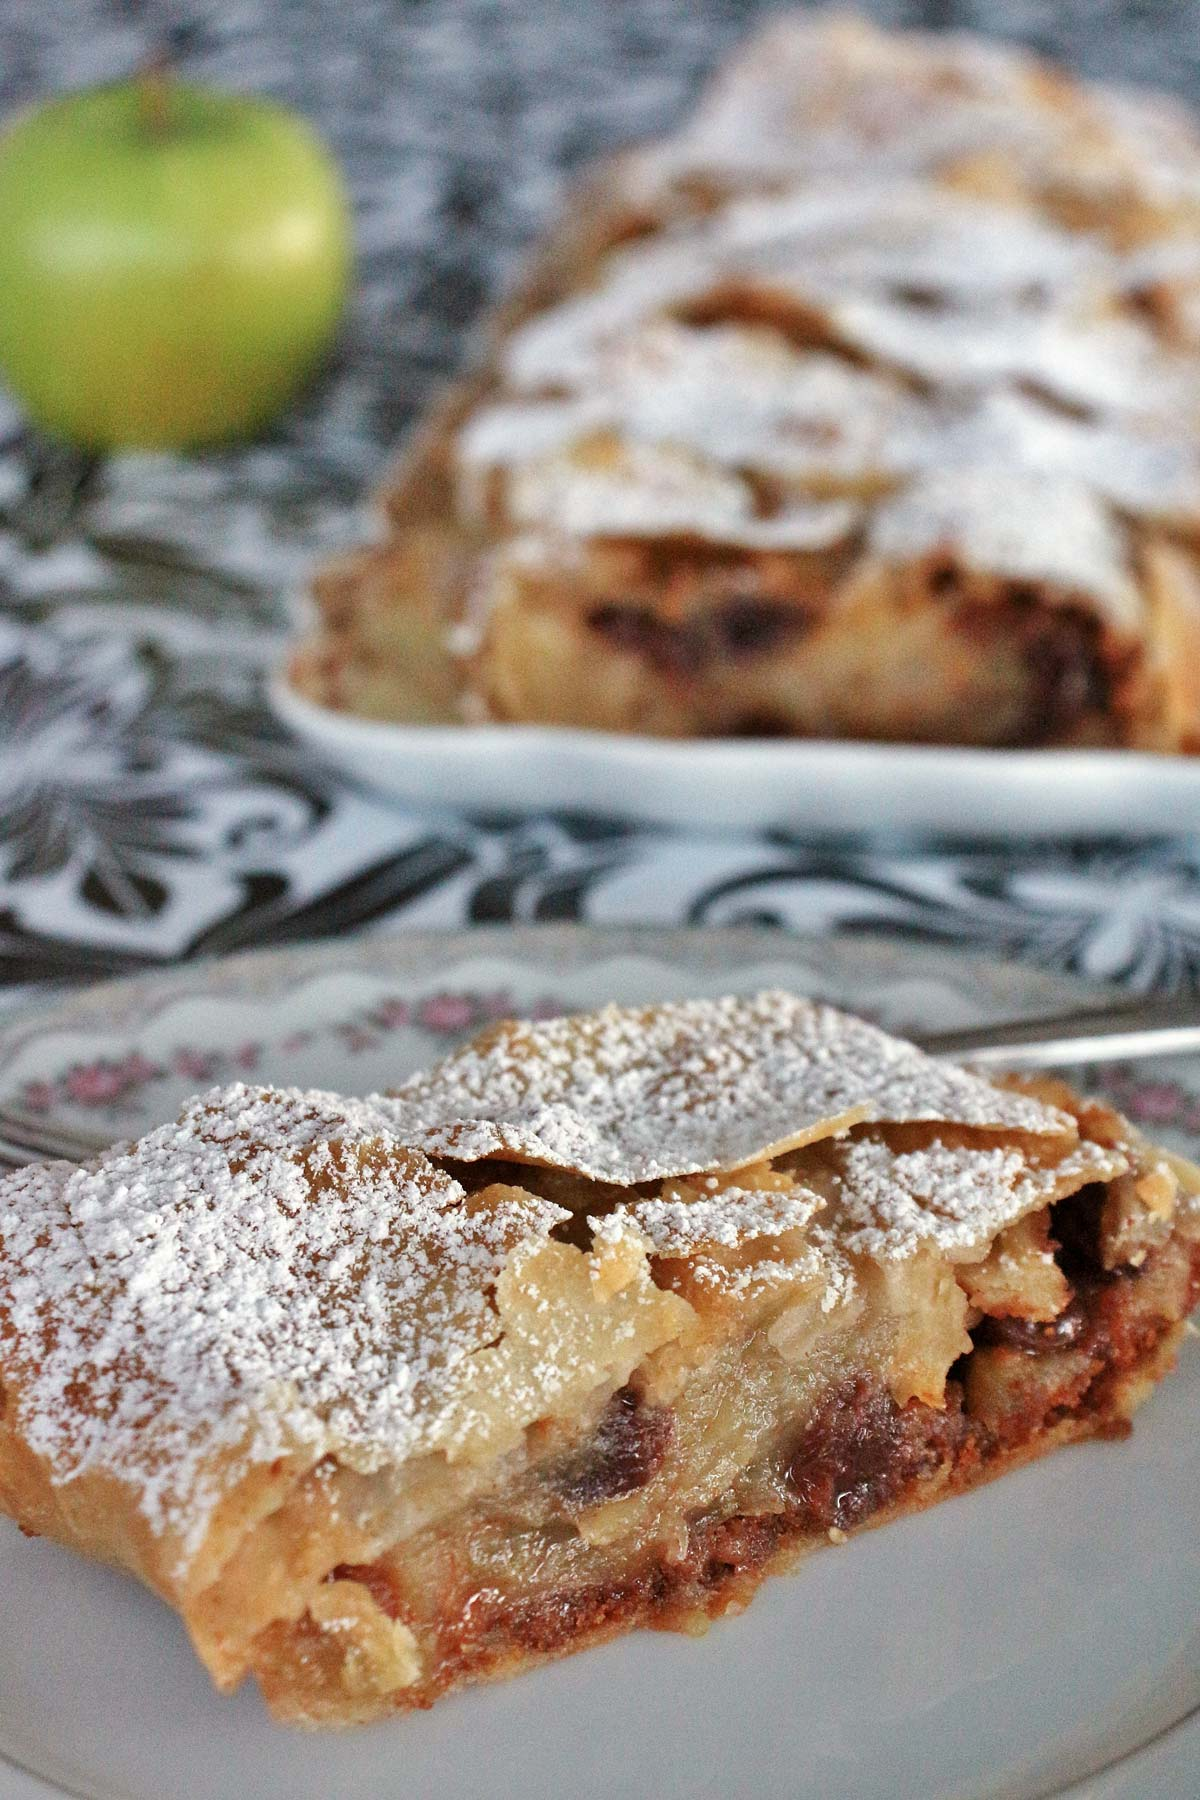 Closeup of a slice of apple strudel on a plate with a platter in the background.